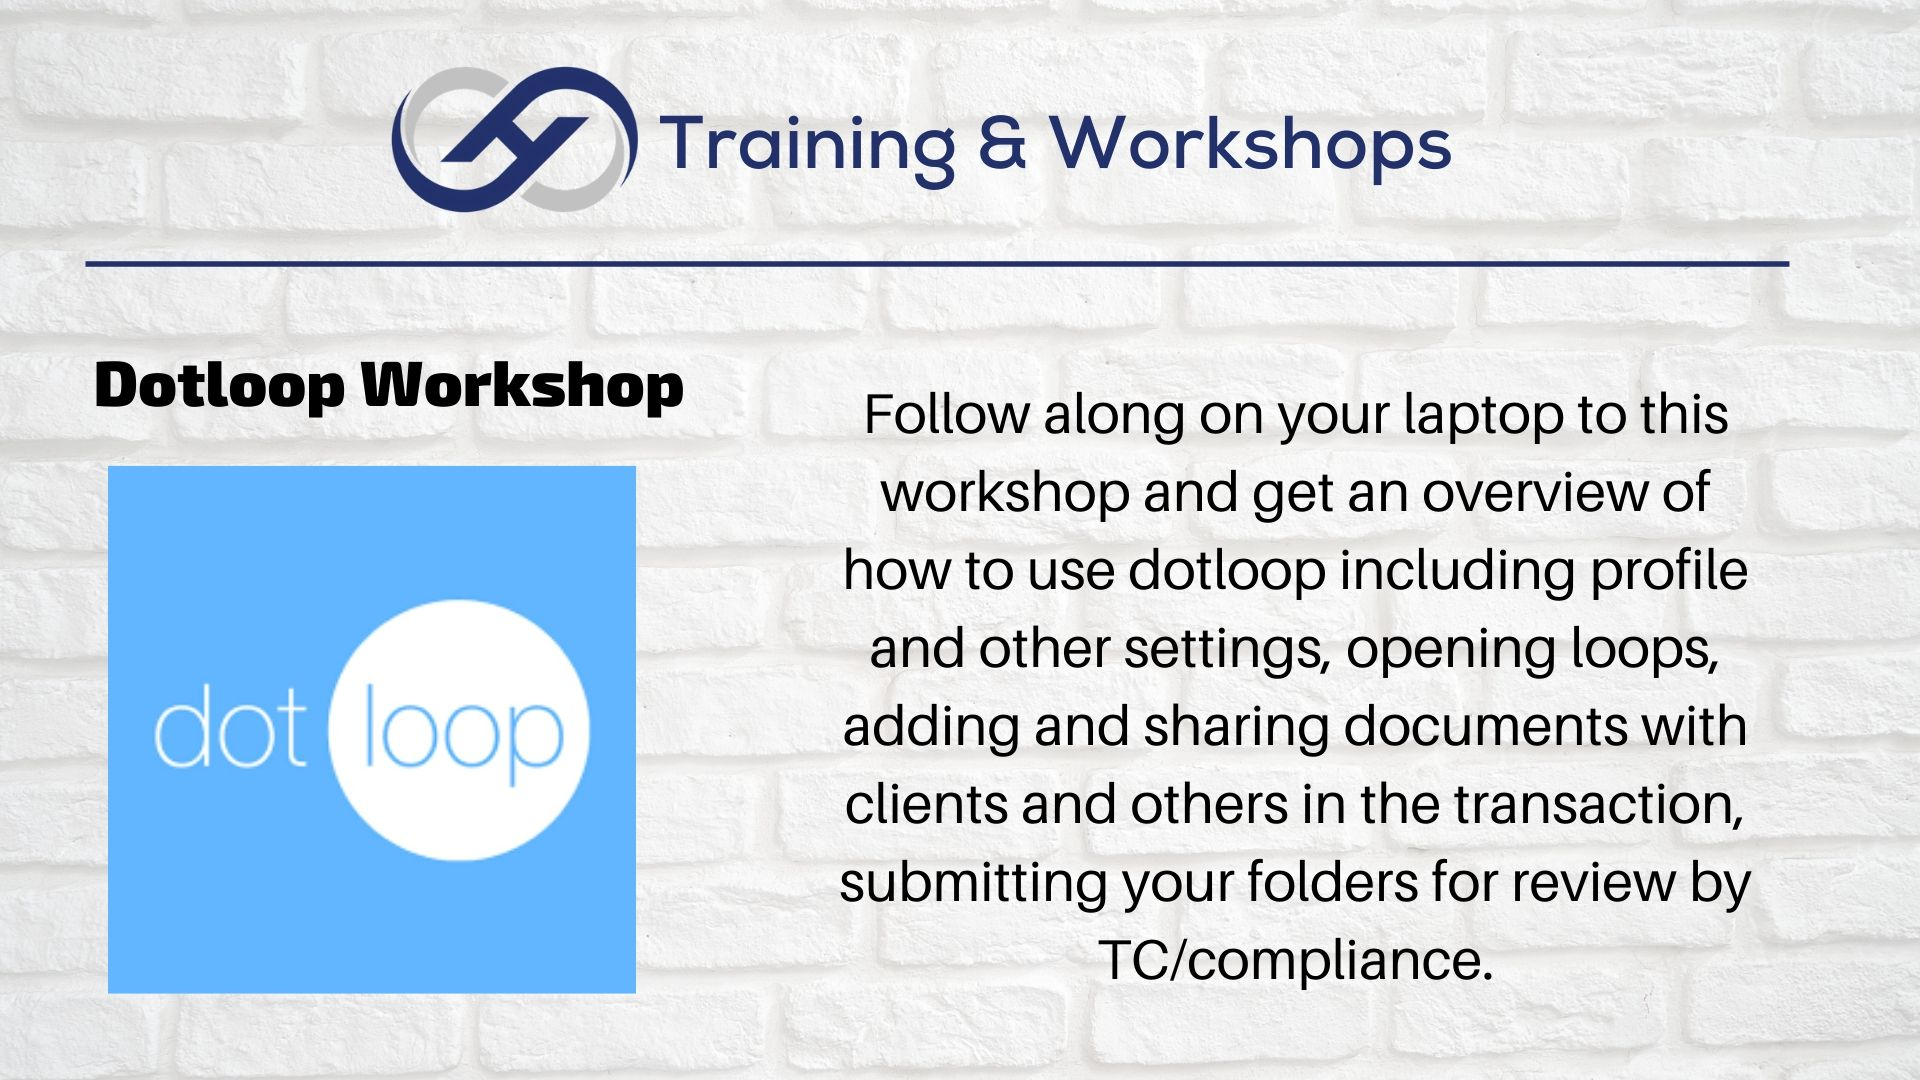 dot loop Workshop